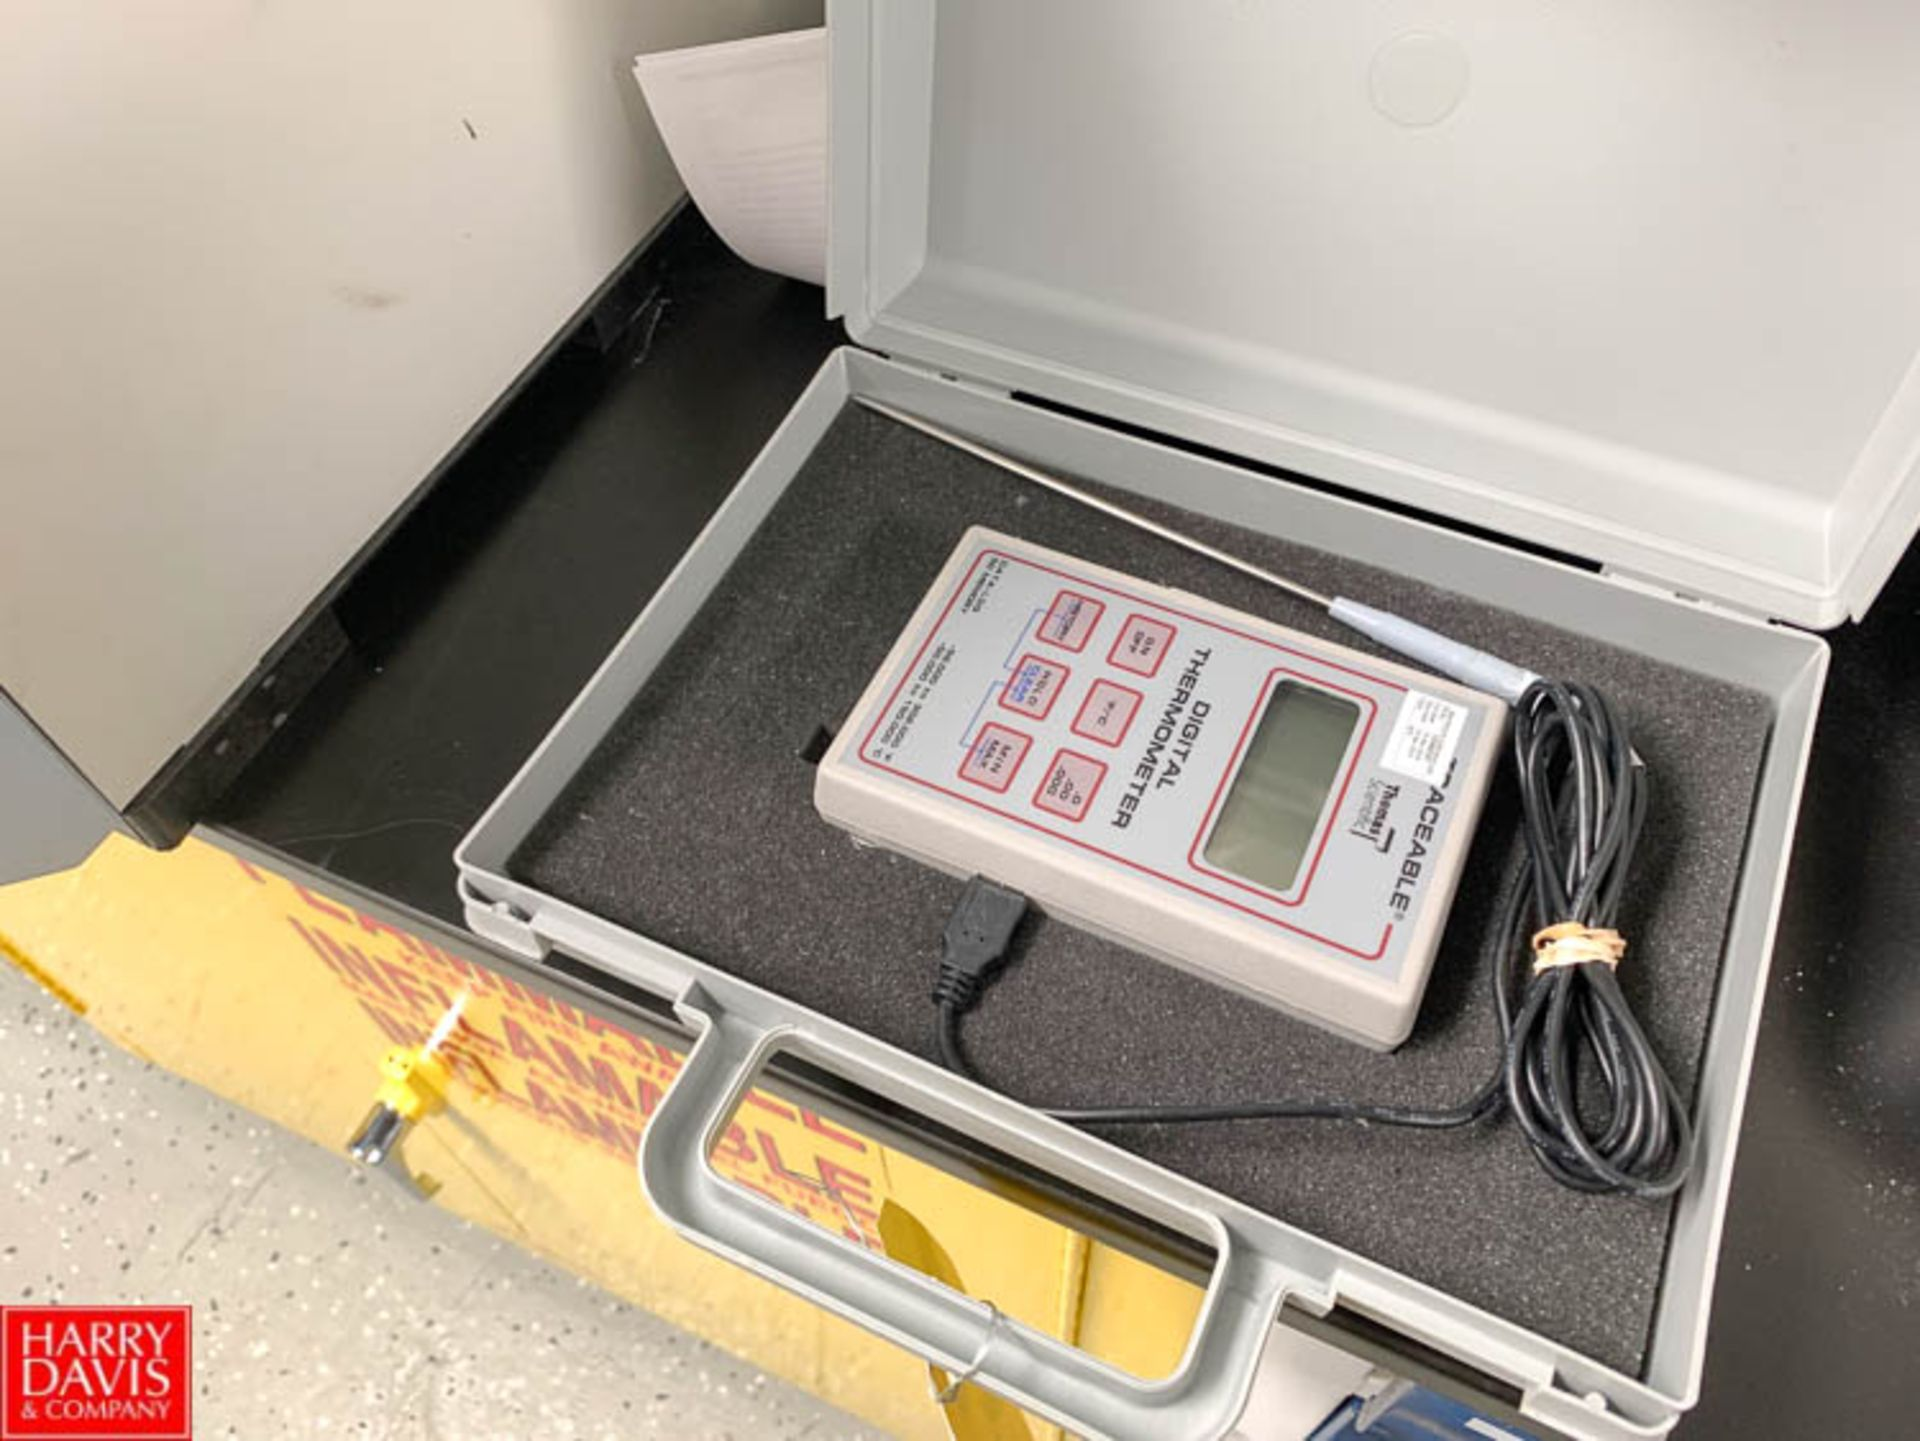 Lot 713 - Traceable Digital Thermometer - Rigging Fee: $20